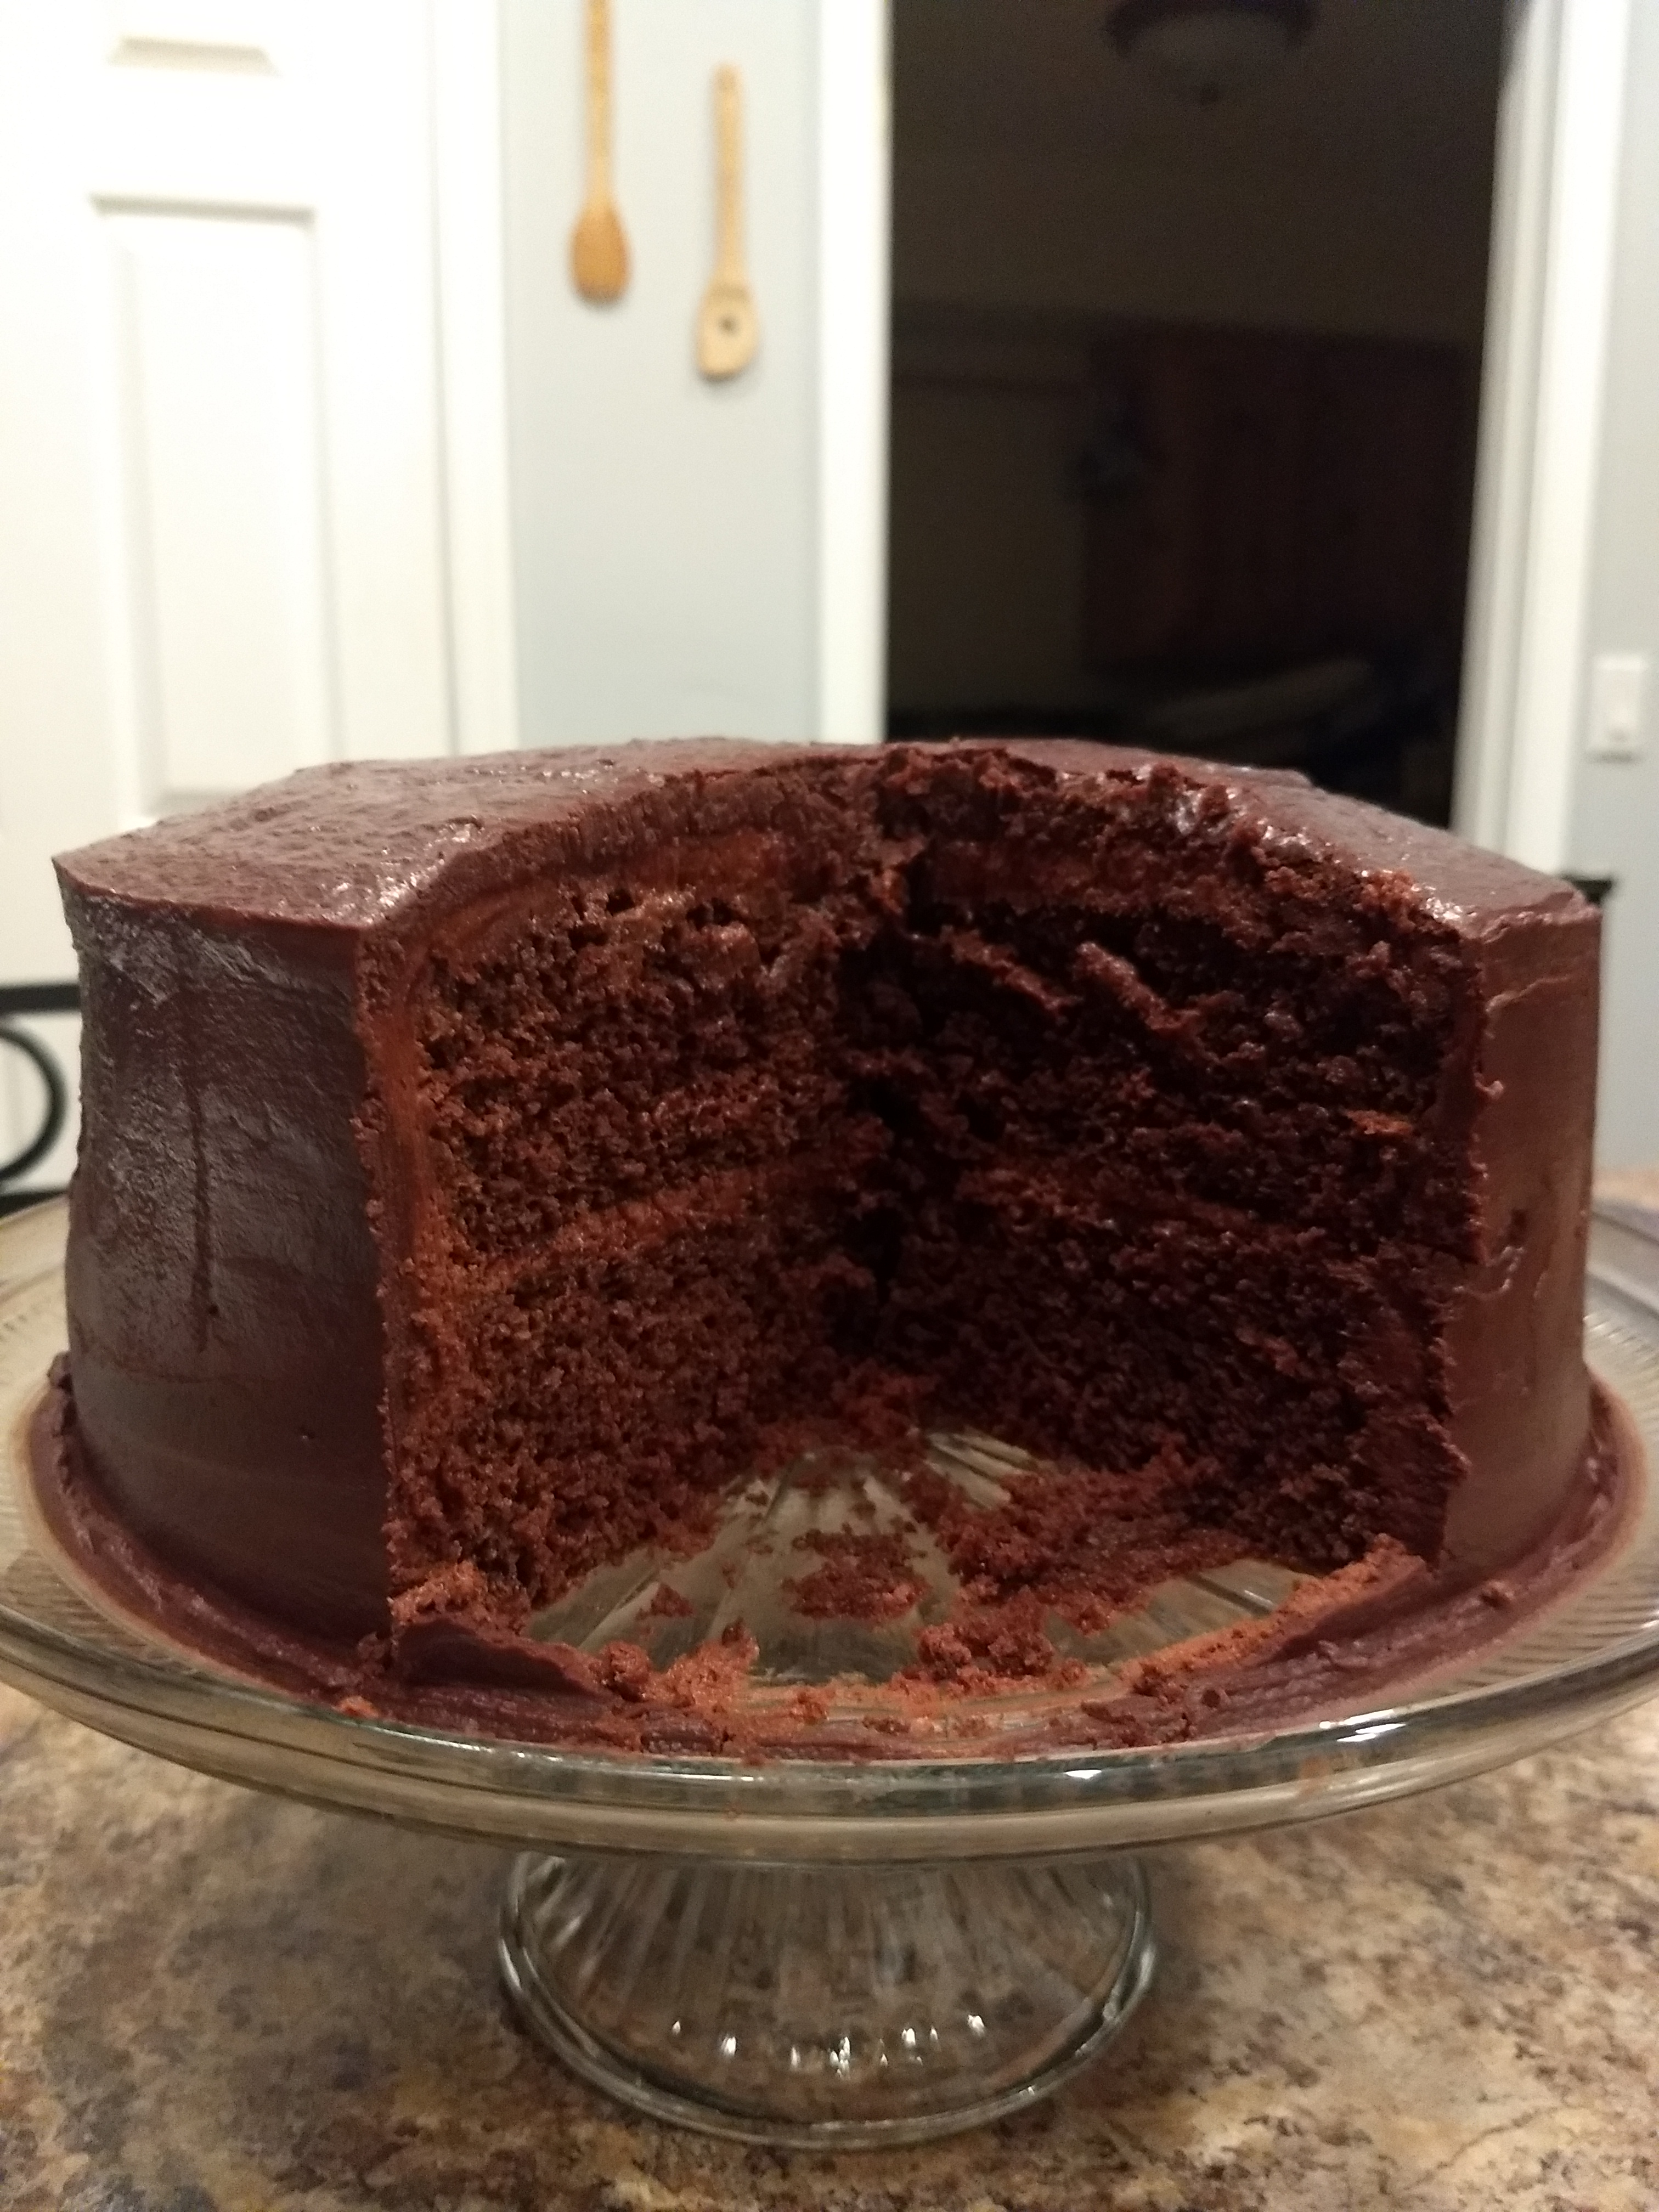 Elizabeth's Extreme Chocolate Lover's Cake